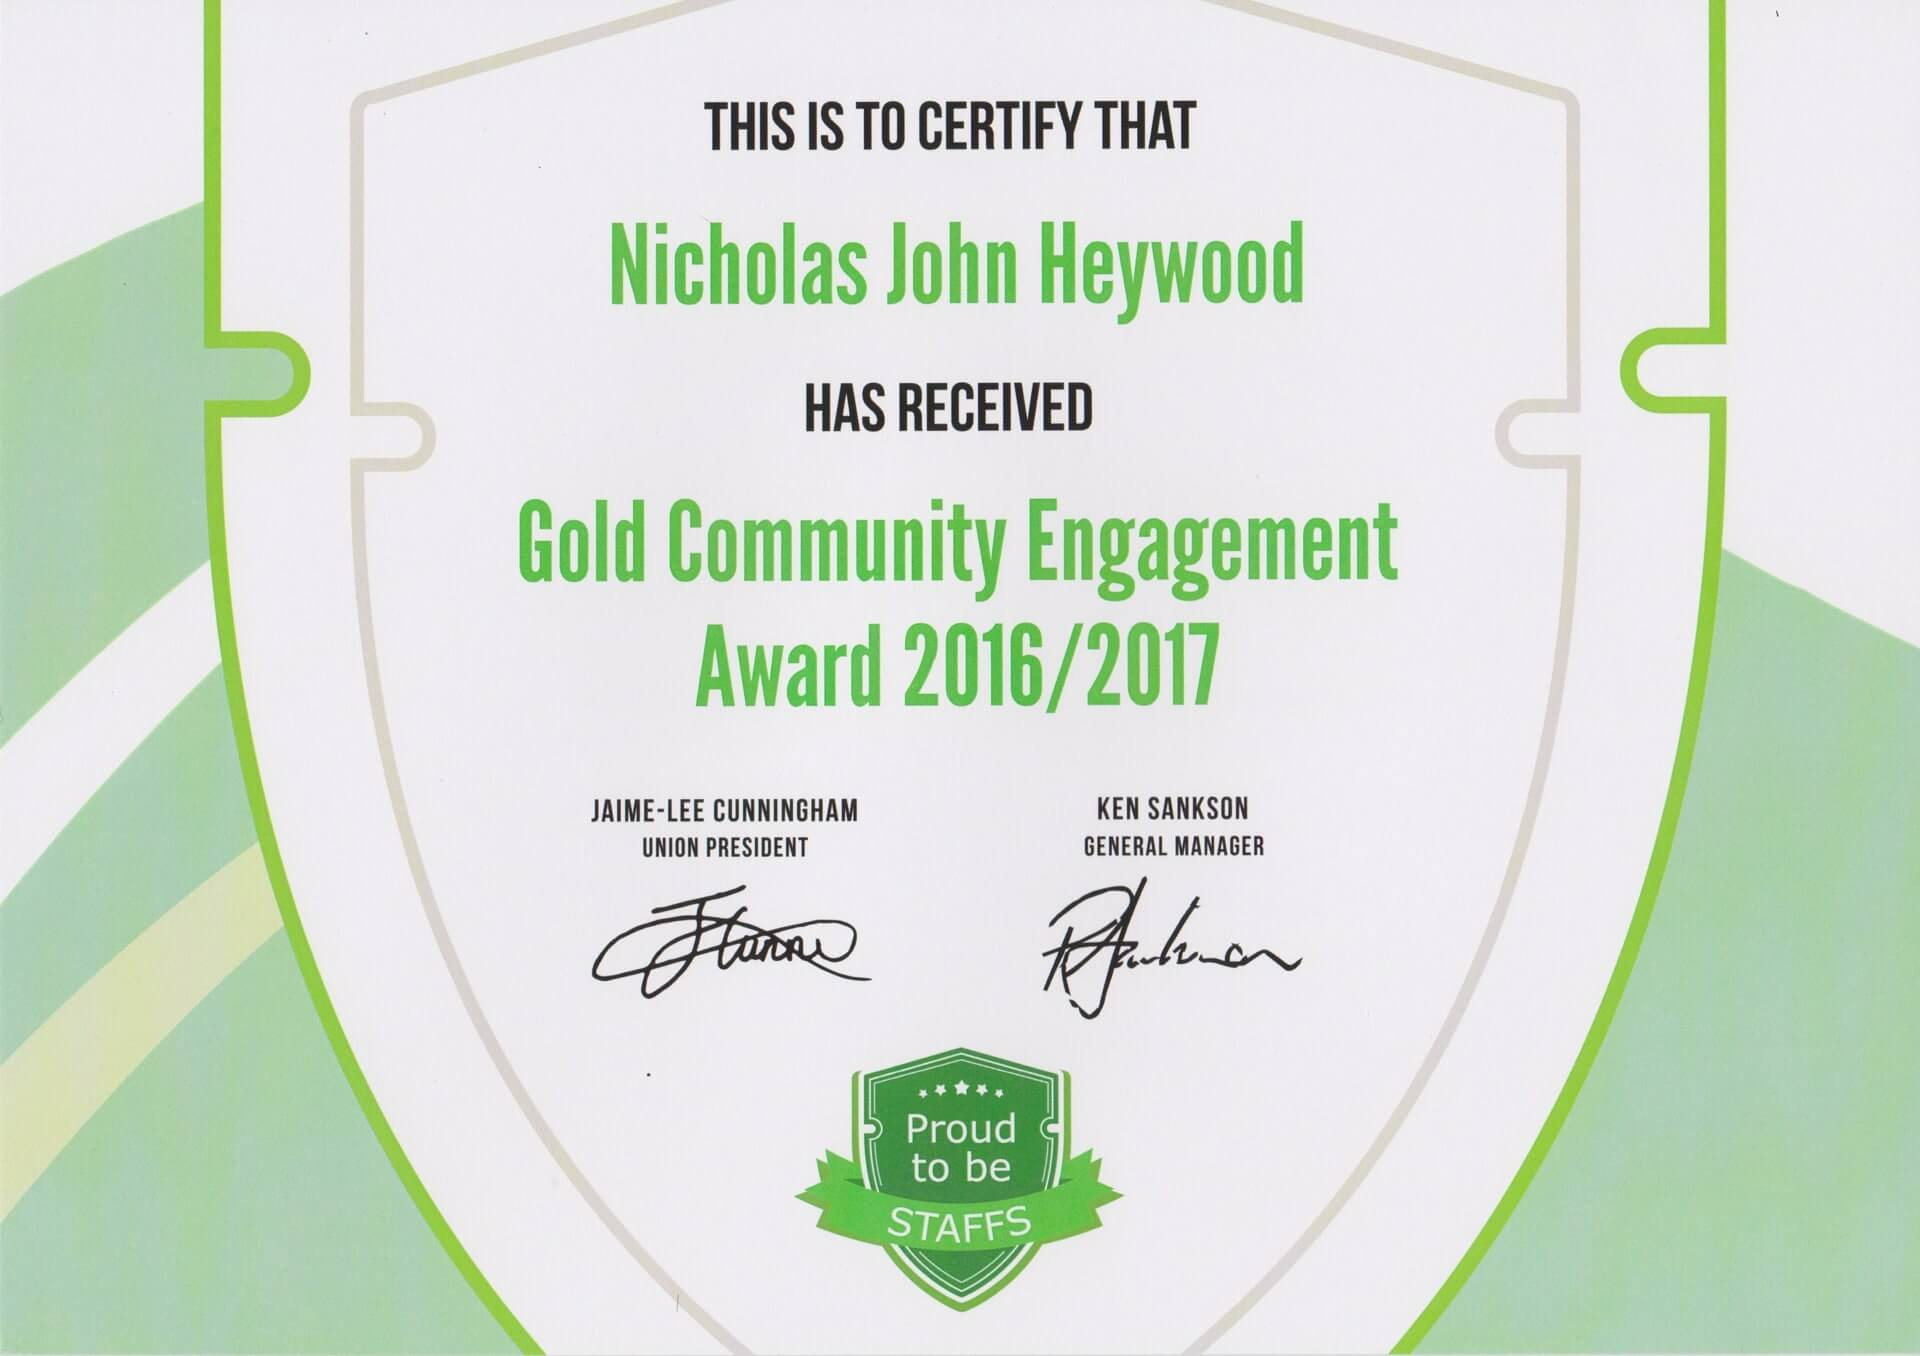 Gold Community Engagement Award 16/17 - Nicholas Heywood